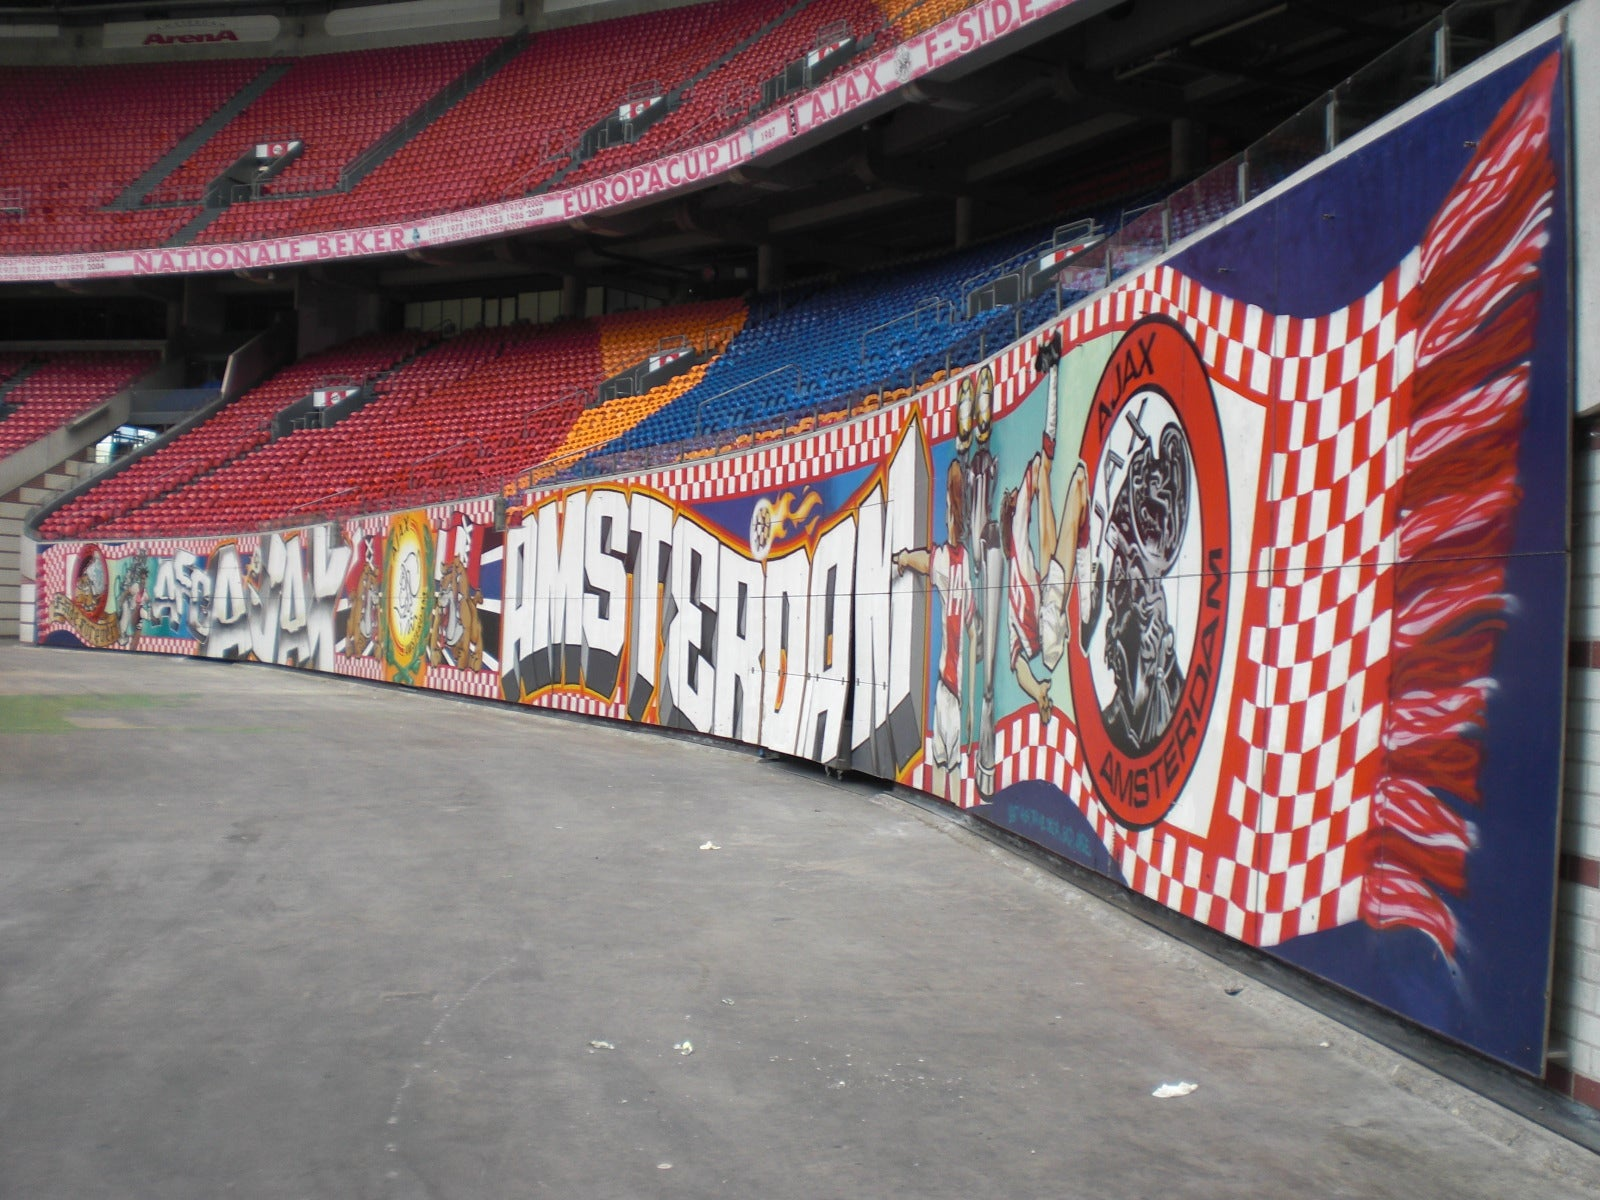 Pared en Ámsterdam Arena